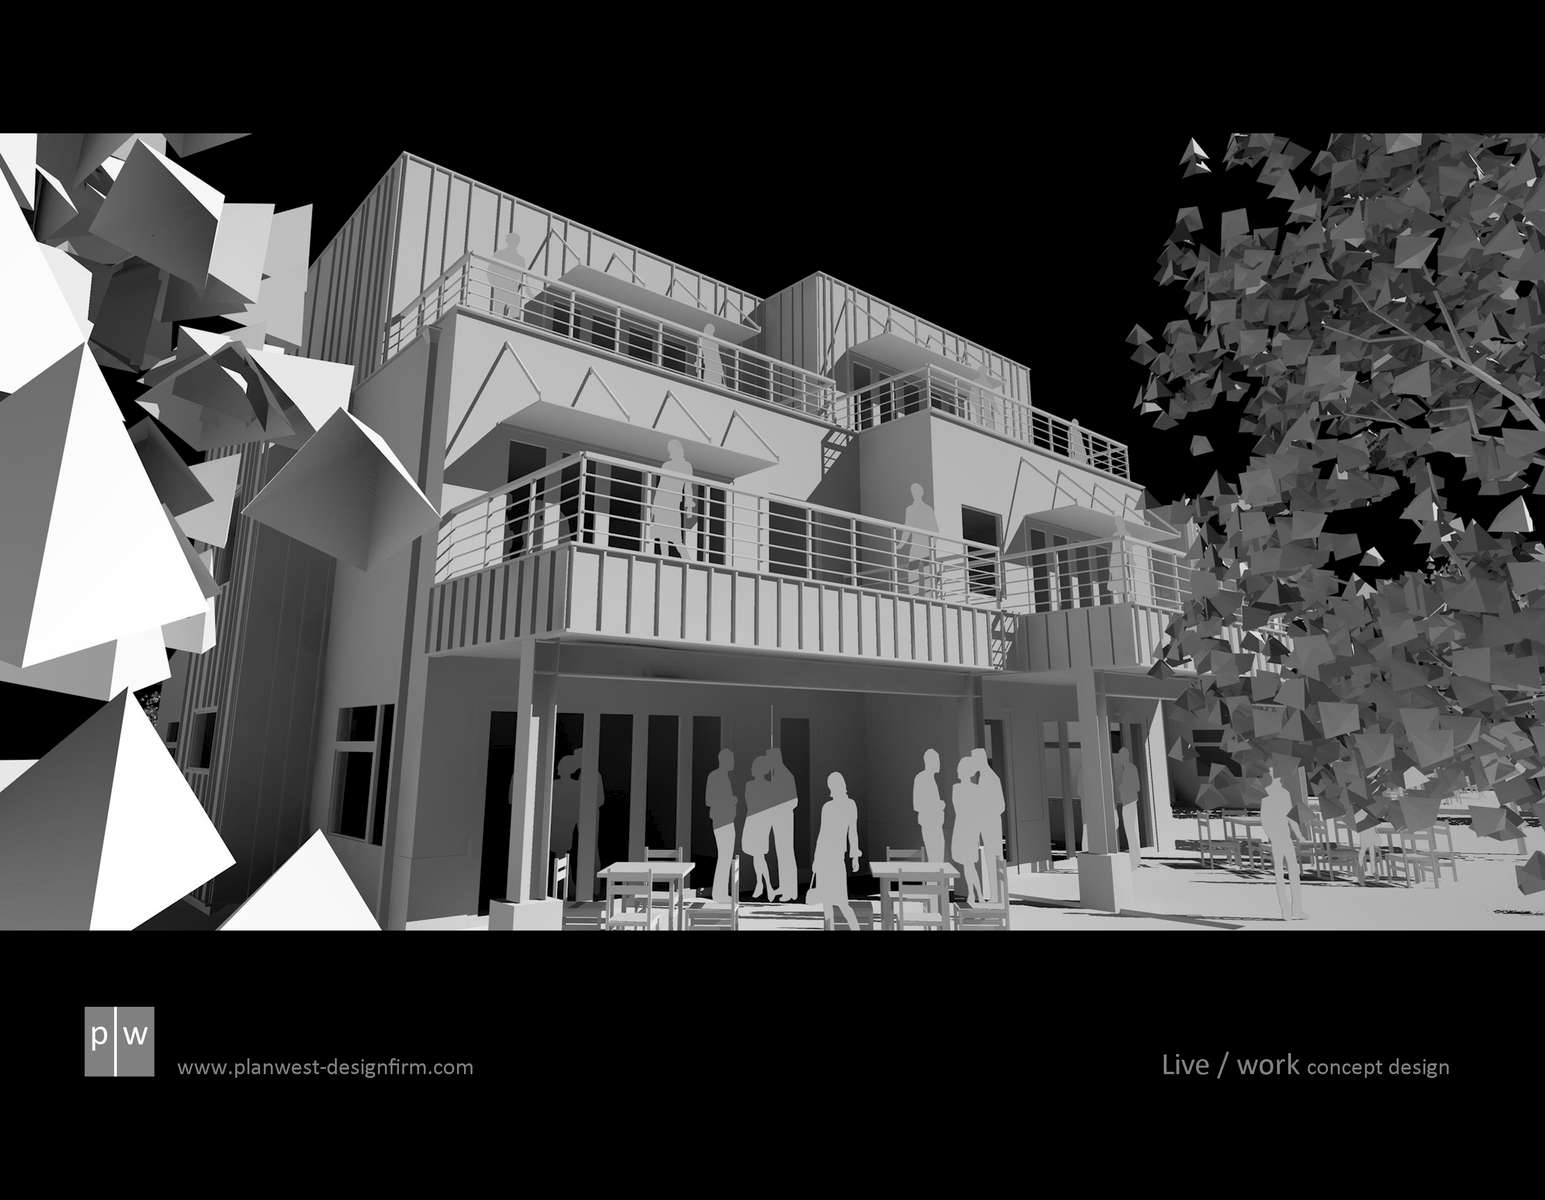 plan-west-design-firm-_-projects-in-process-702